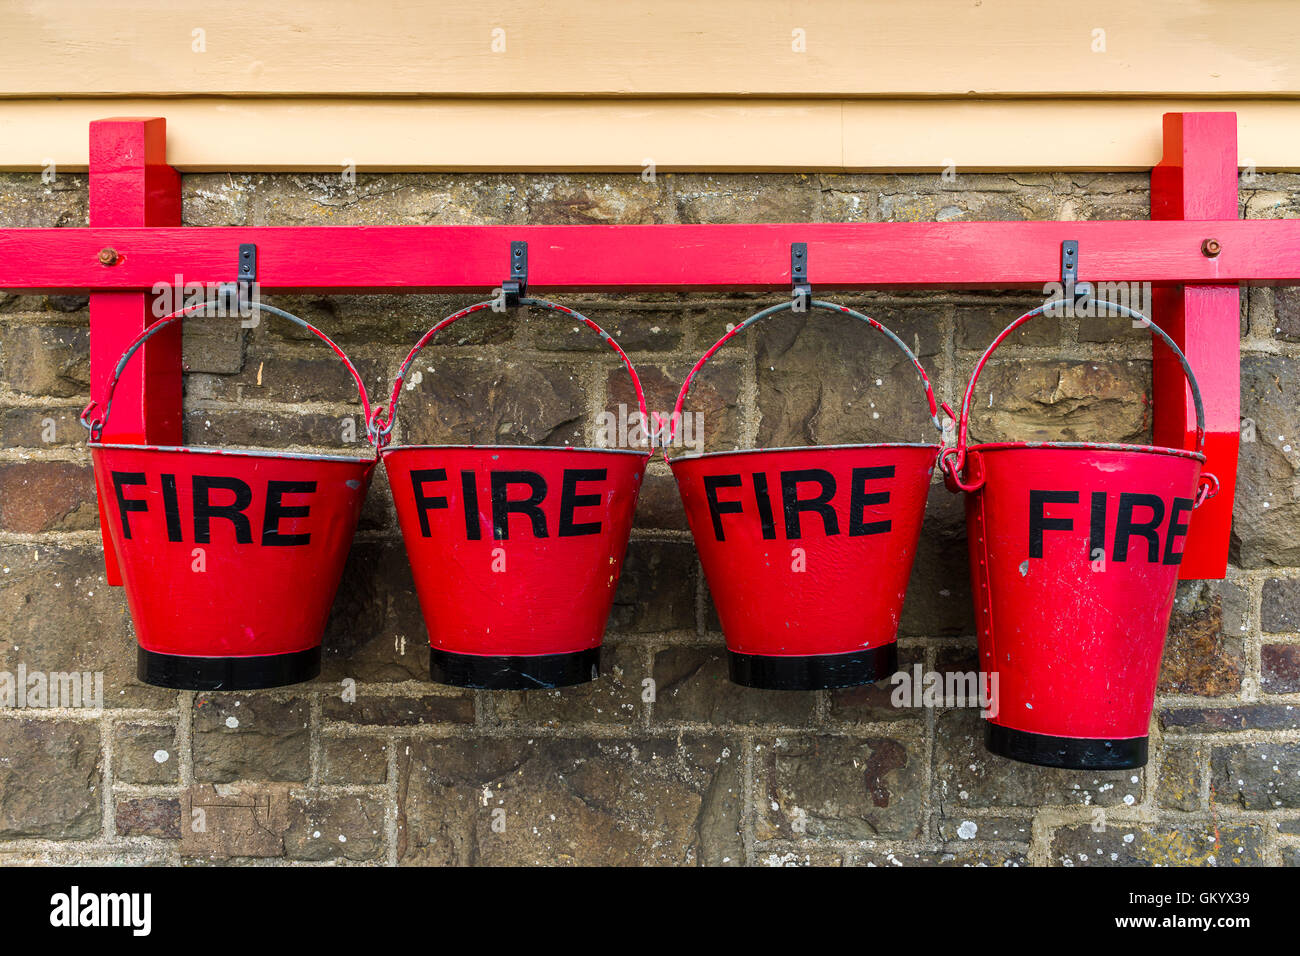 Fire Buckets - Stock Image